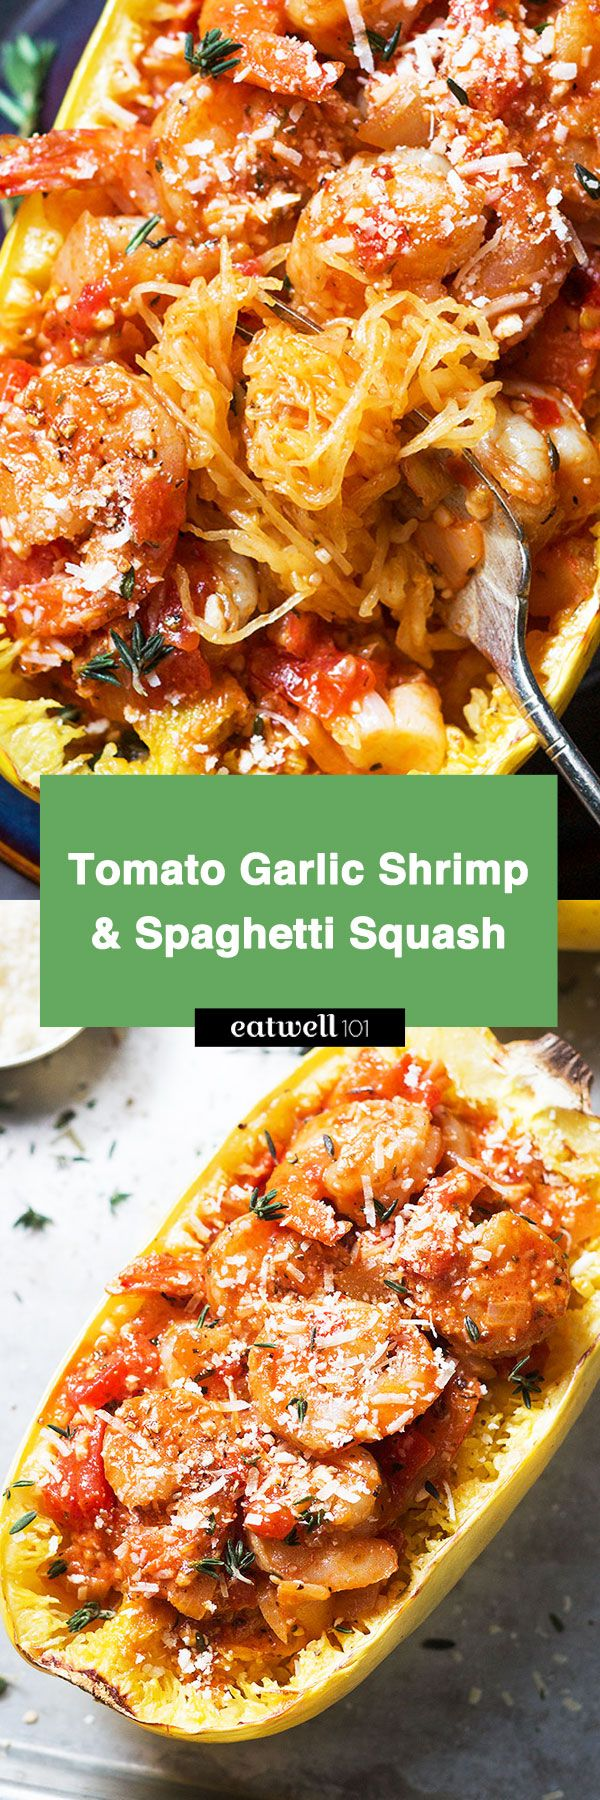 Don't miss this stuffed spaghetti squash with spicy shrimp in garlic tomato cream sauce. eatwell101.com